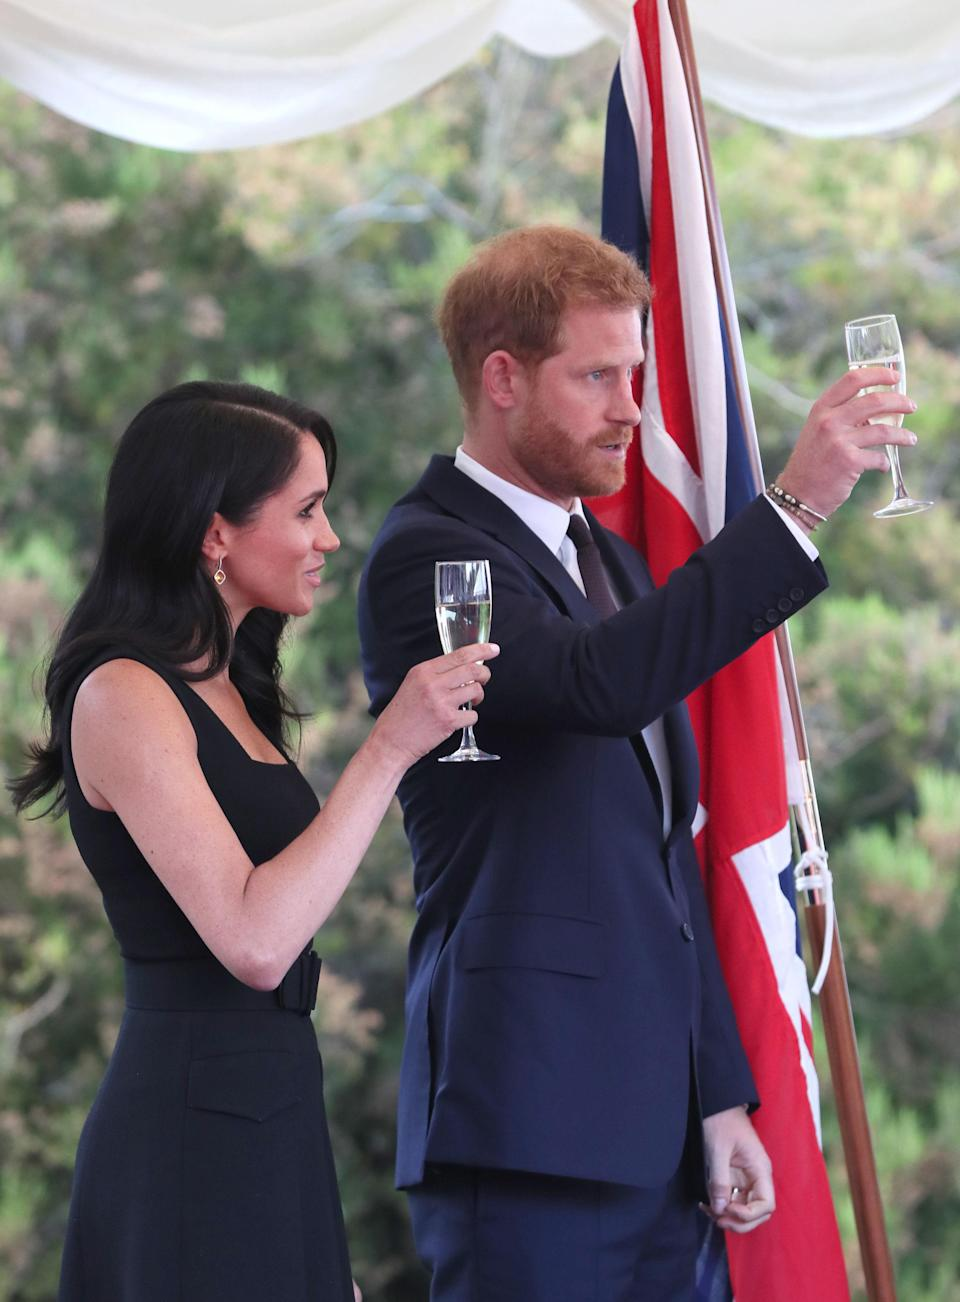 The Duke of Sussex gave a touching speech at the summer garden party [Photo: PA]